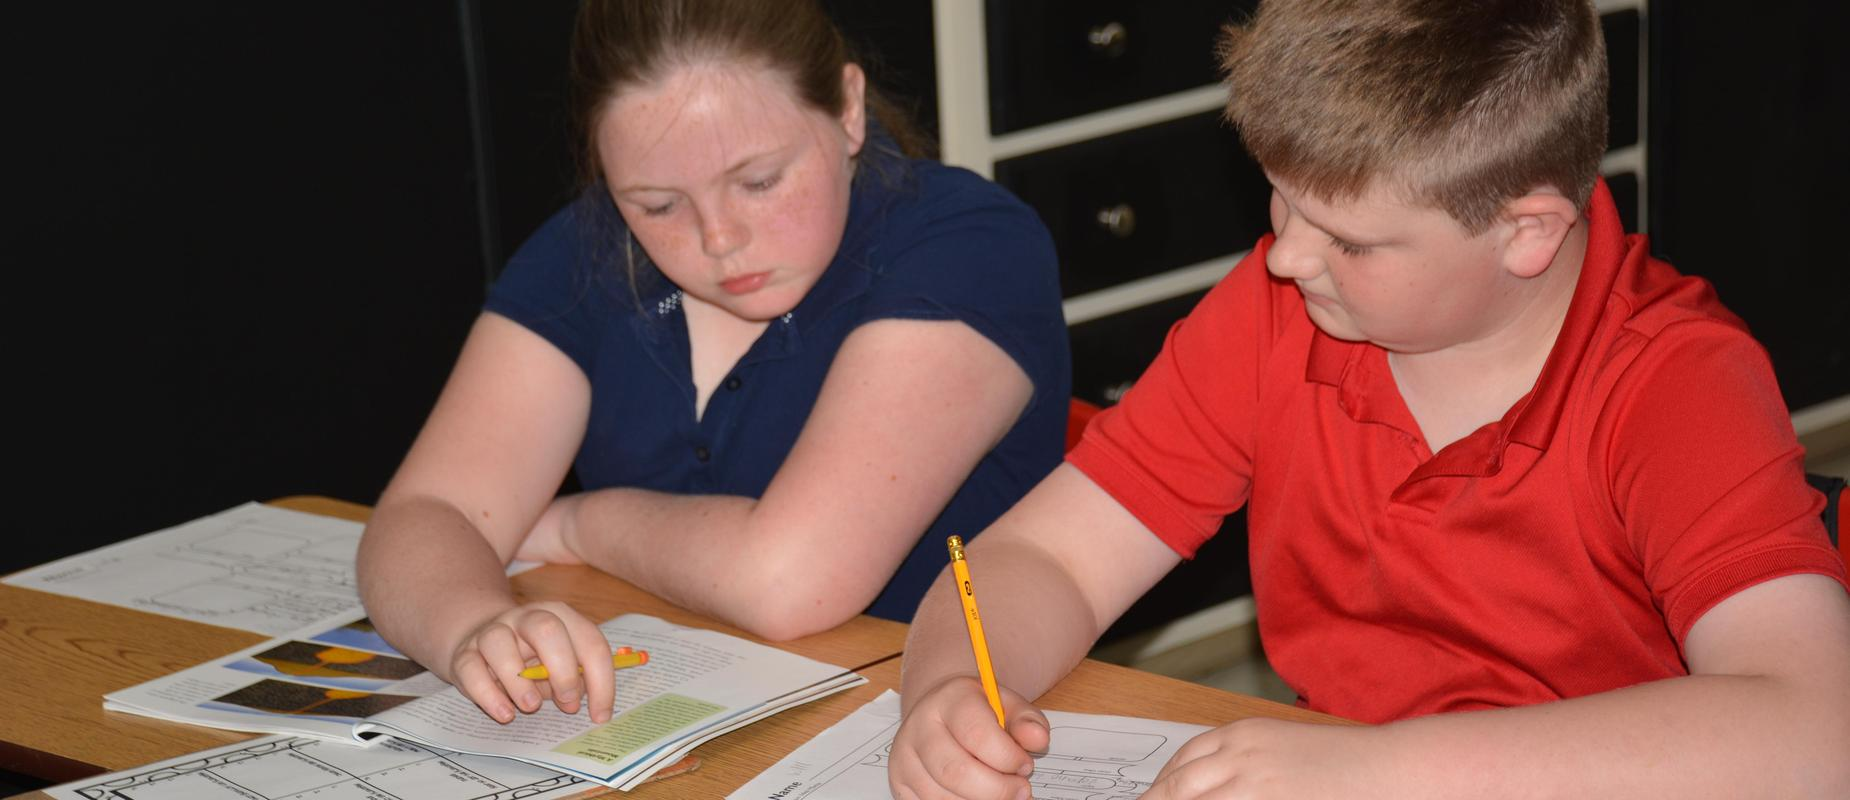 two students working collaboratively